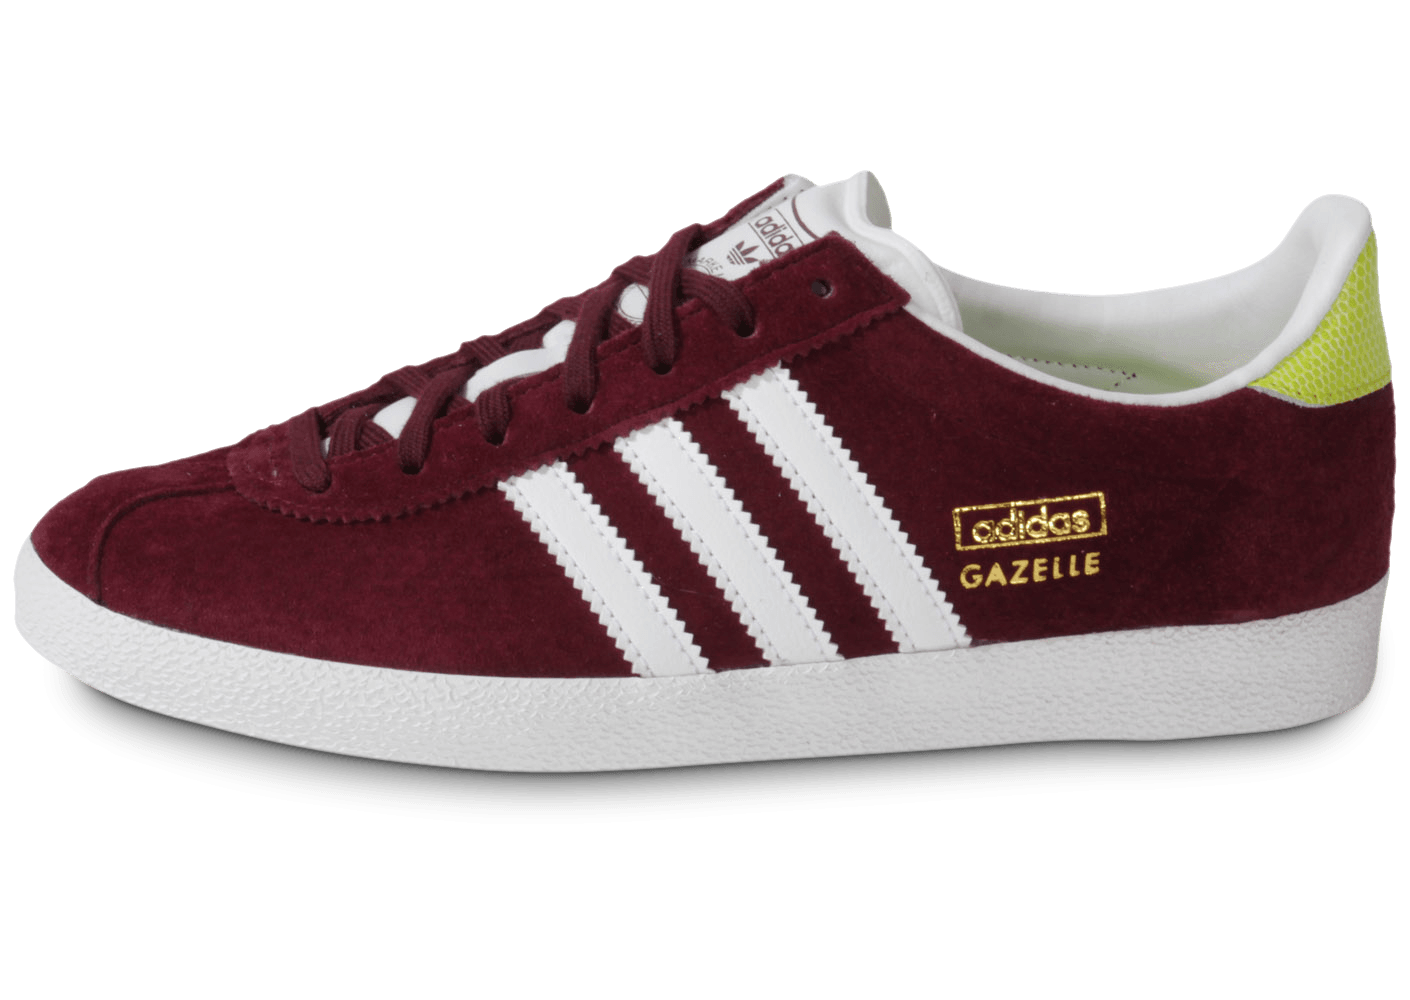 gazelle adidas bordeaux